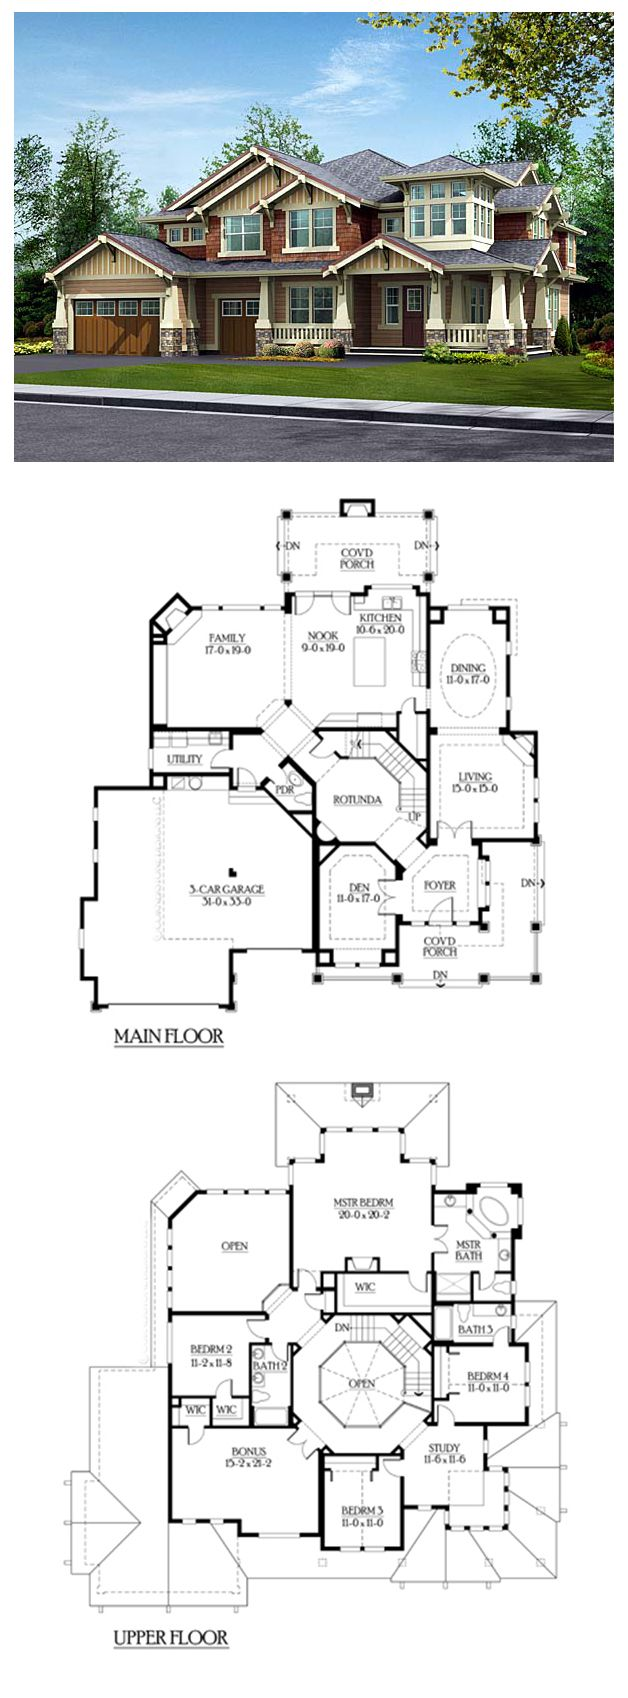 Houseplan 87574 Has 4084 Square Feet Of Living Space 4 Bedrooms And 3 5 Bathrooms With A